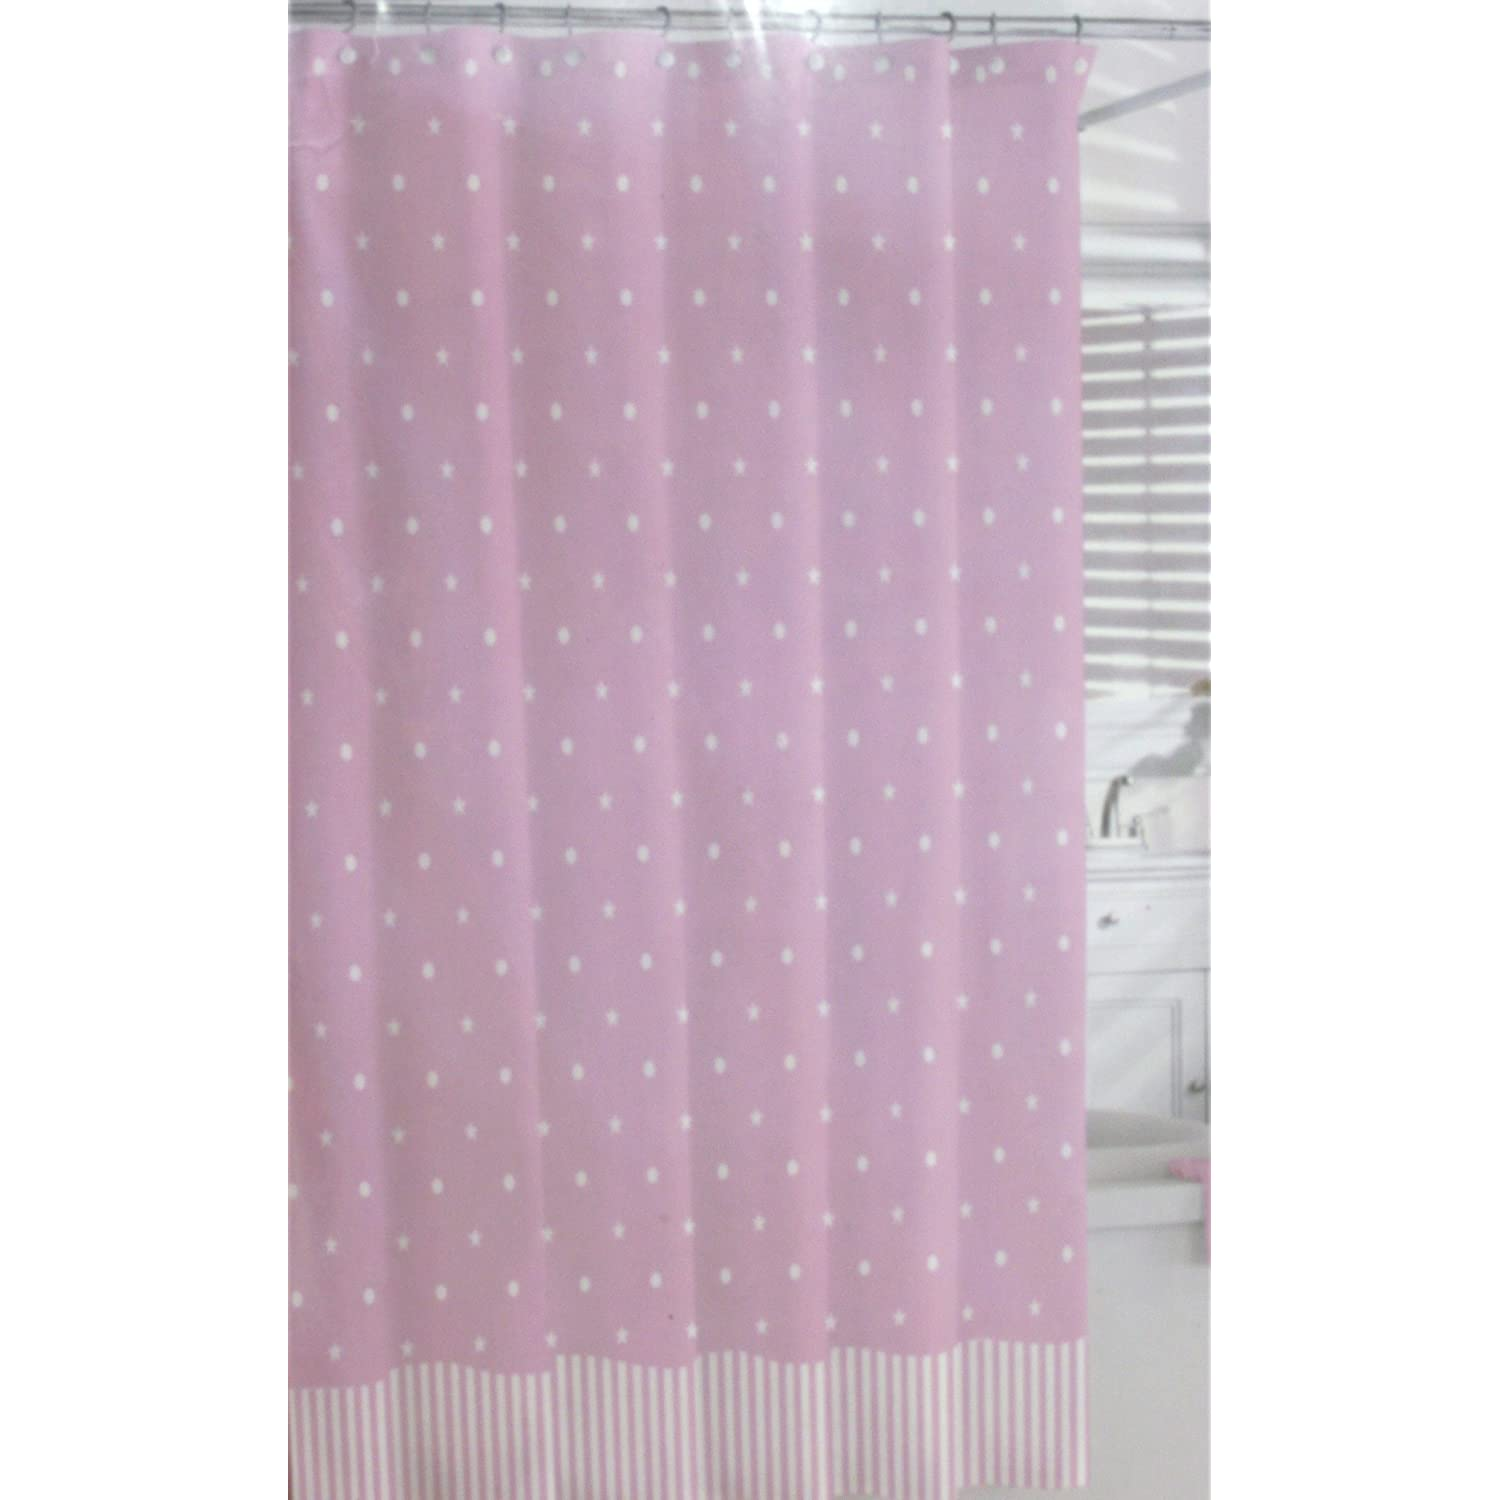 White polka dots and stars on pink Shower curtain